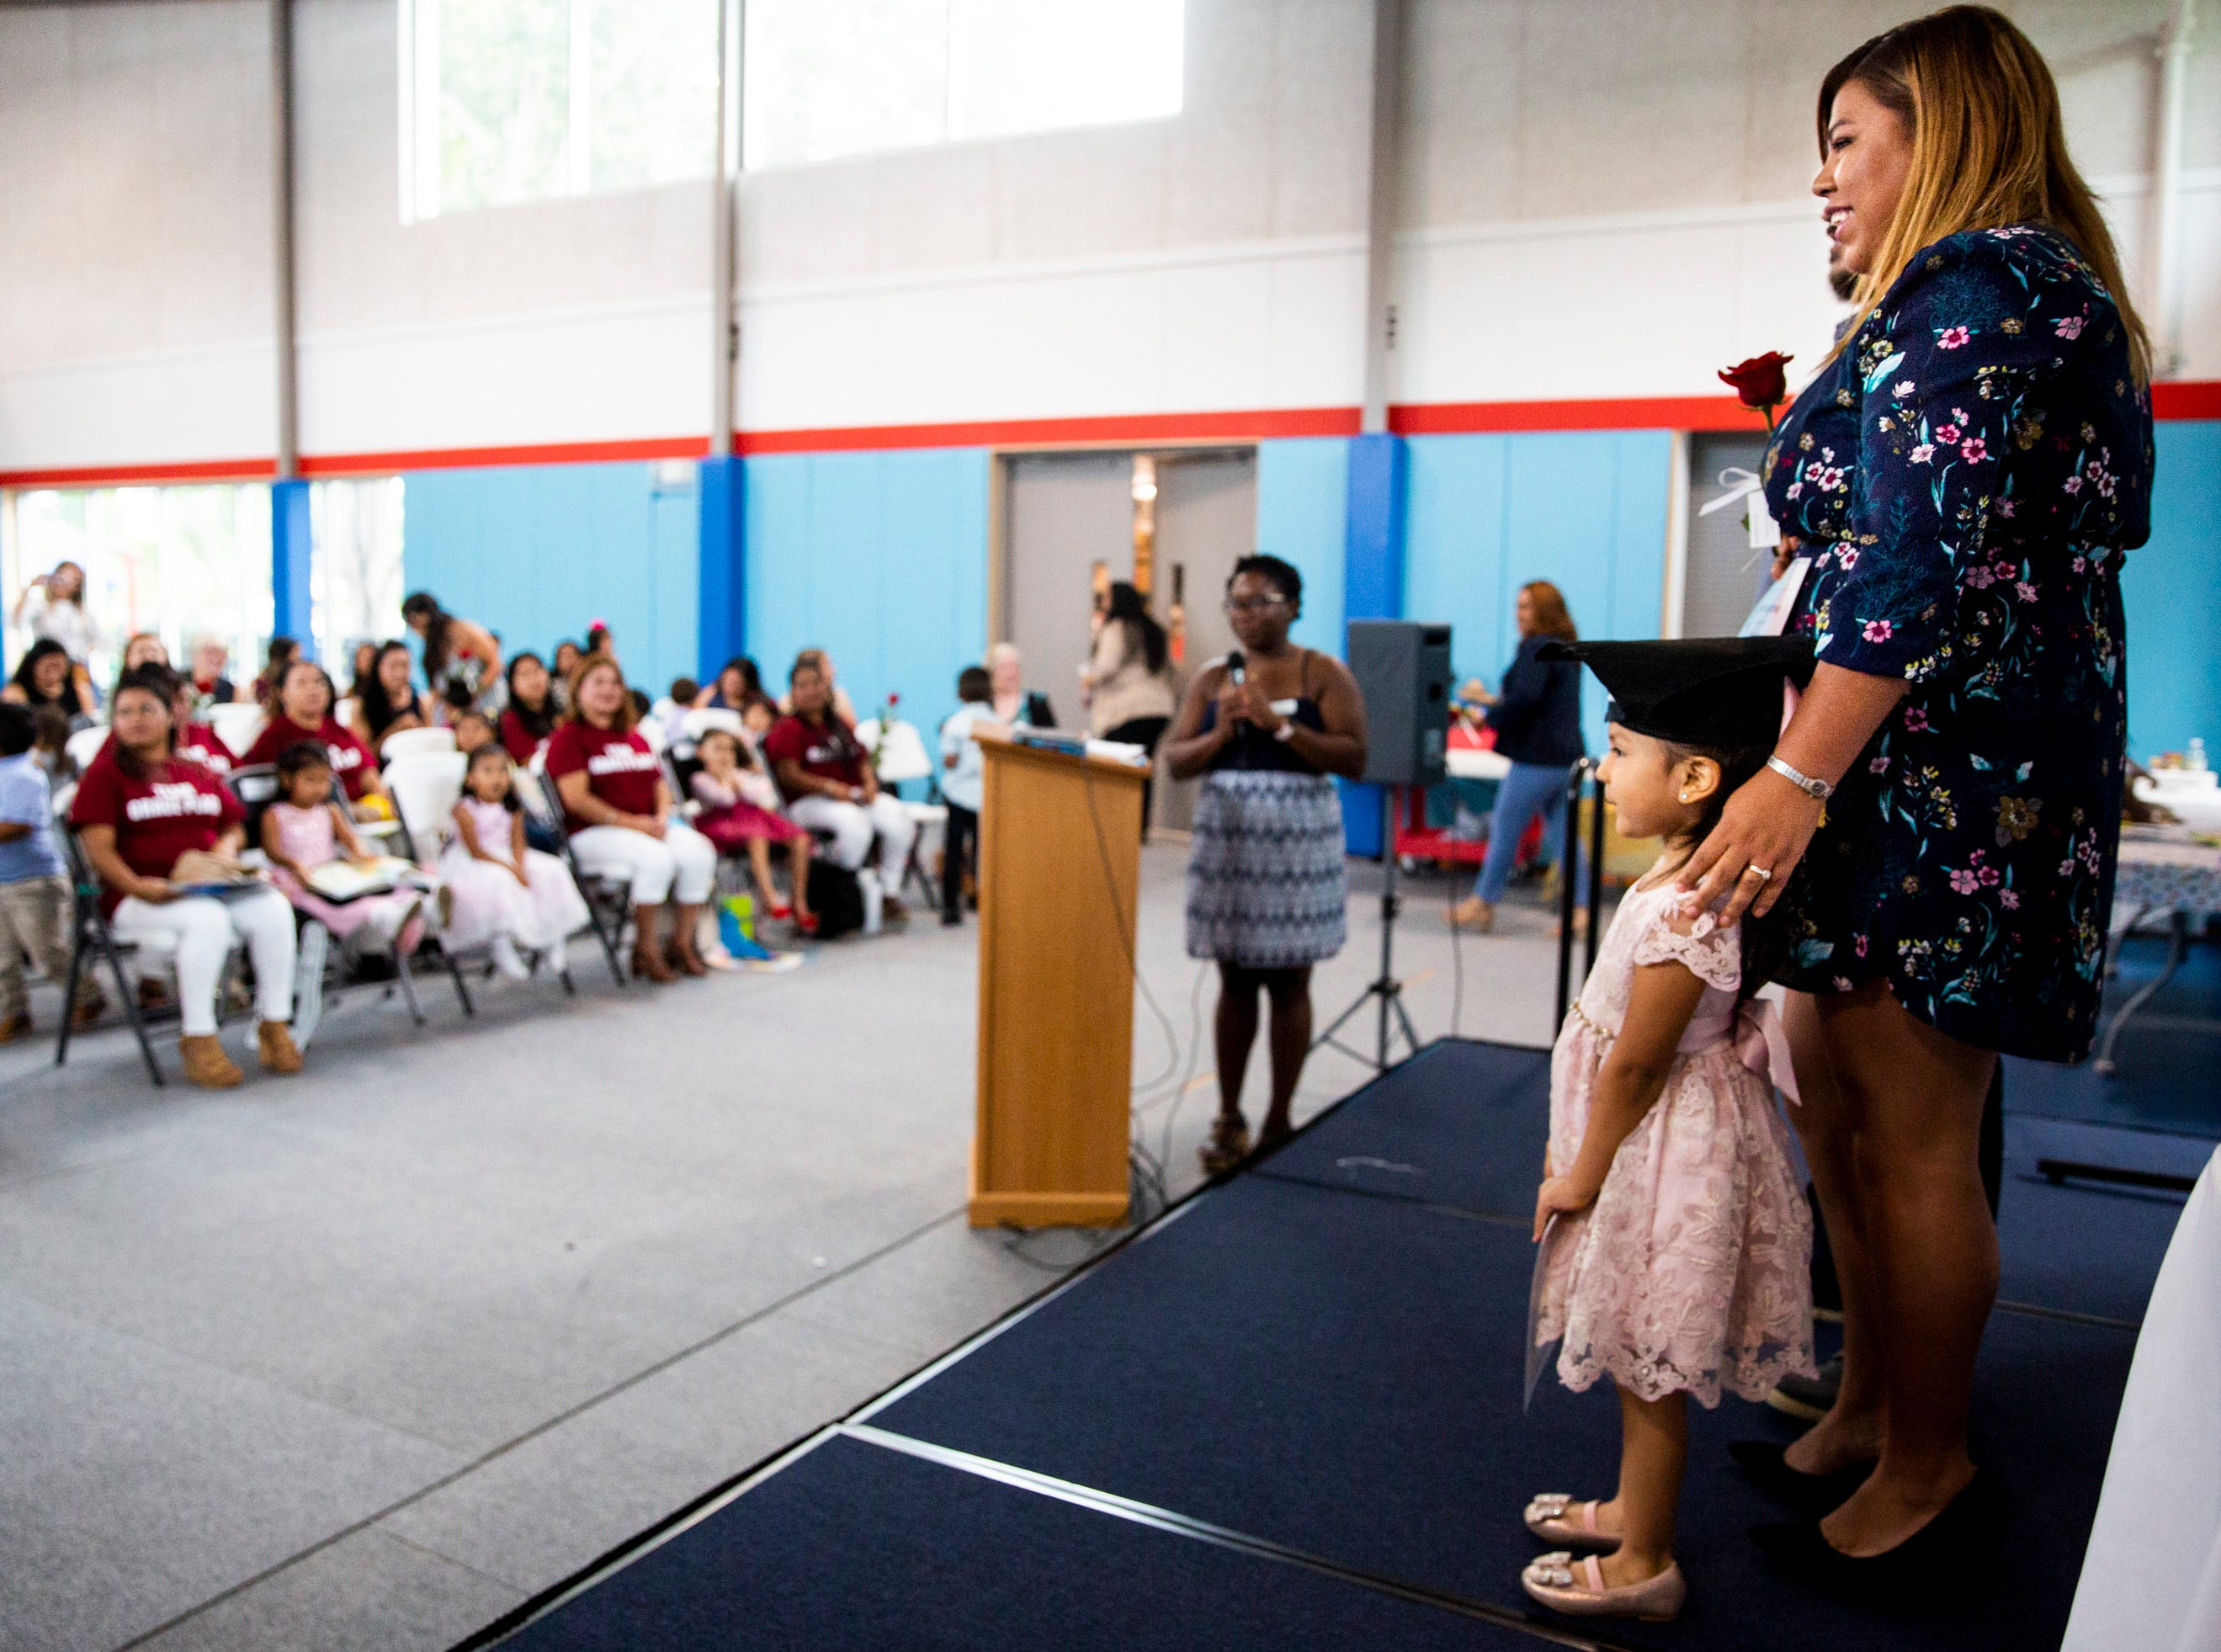 Berenice Garcia and her daughter Vanessa Perez, 3, pose for a photo during the Bright Beginnings family literacy program graduation at Grace Place in Golden Gate on Wednesday, May 15, 2019. Garcia has been attending classes through the program for the past six years.